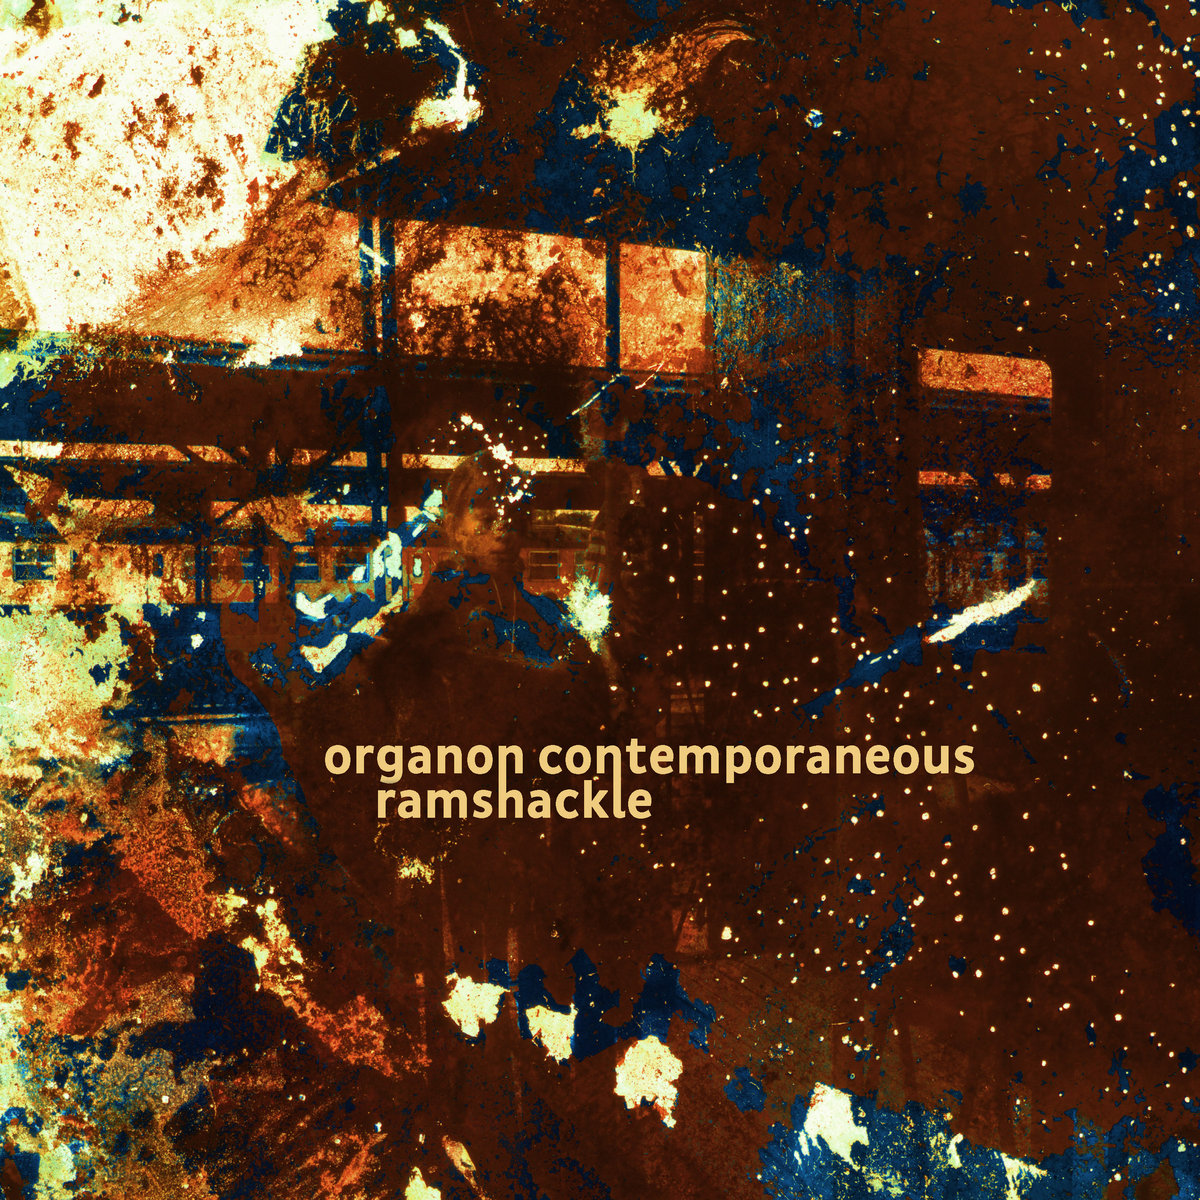 organon contemporaneous – ramshackle